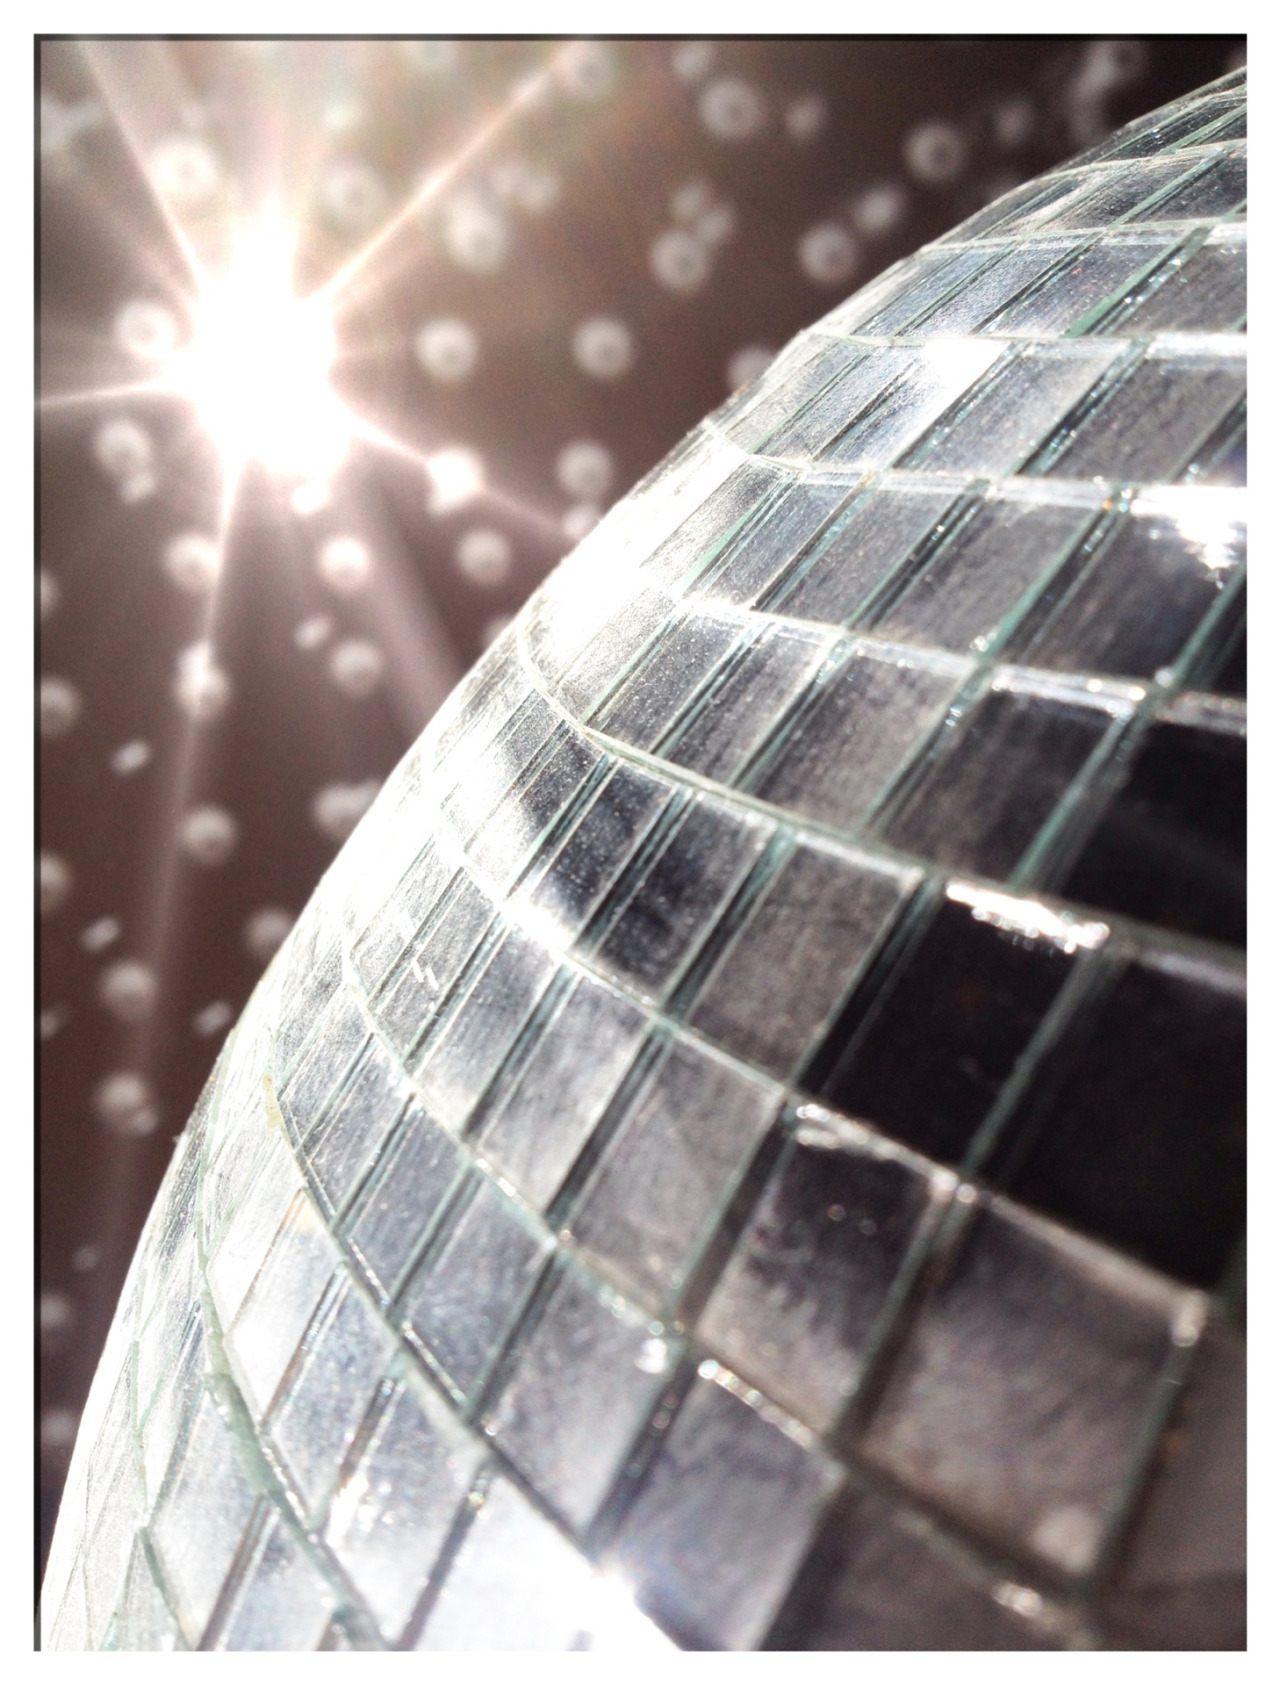 Funky times on a recent shoot - disco balls, streak filters and 1k Xenon lamps.  The 1k Xenons proved the right tool for nice crispy patterns across the background and played nicely with the streak filter on the camera. Examples to follow a couple of months from now…..